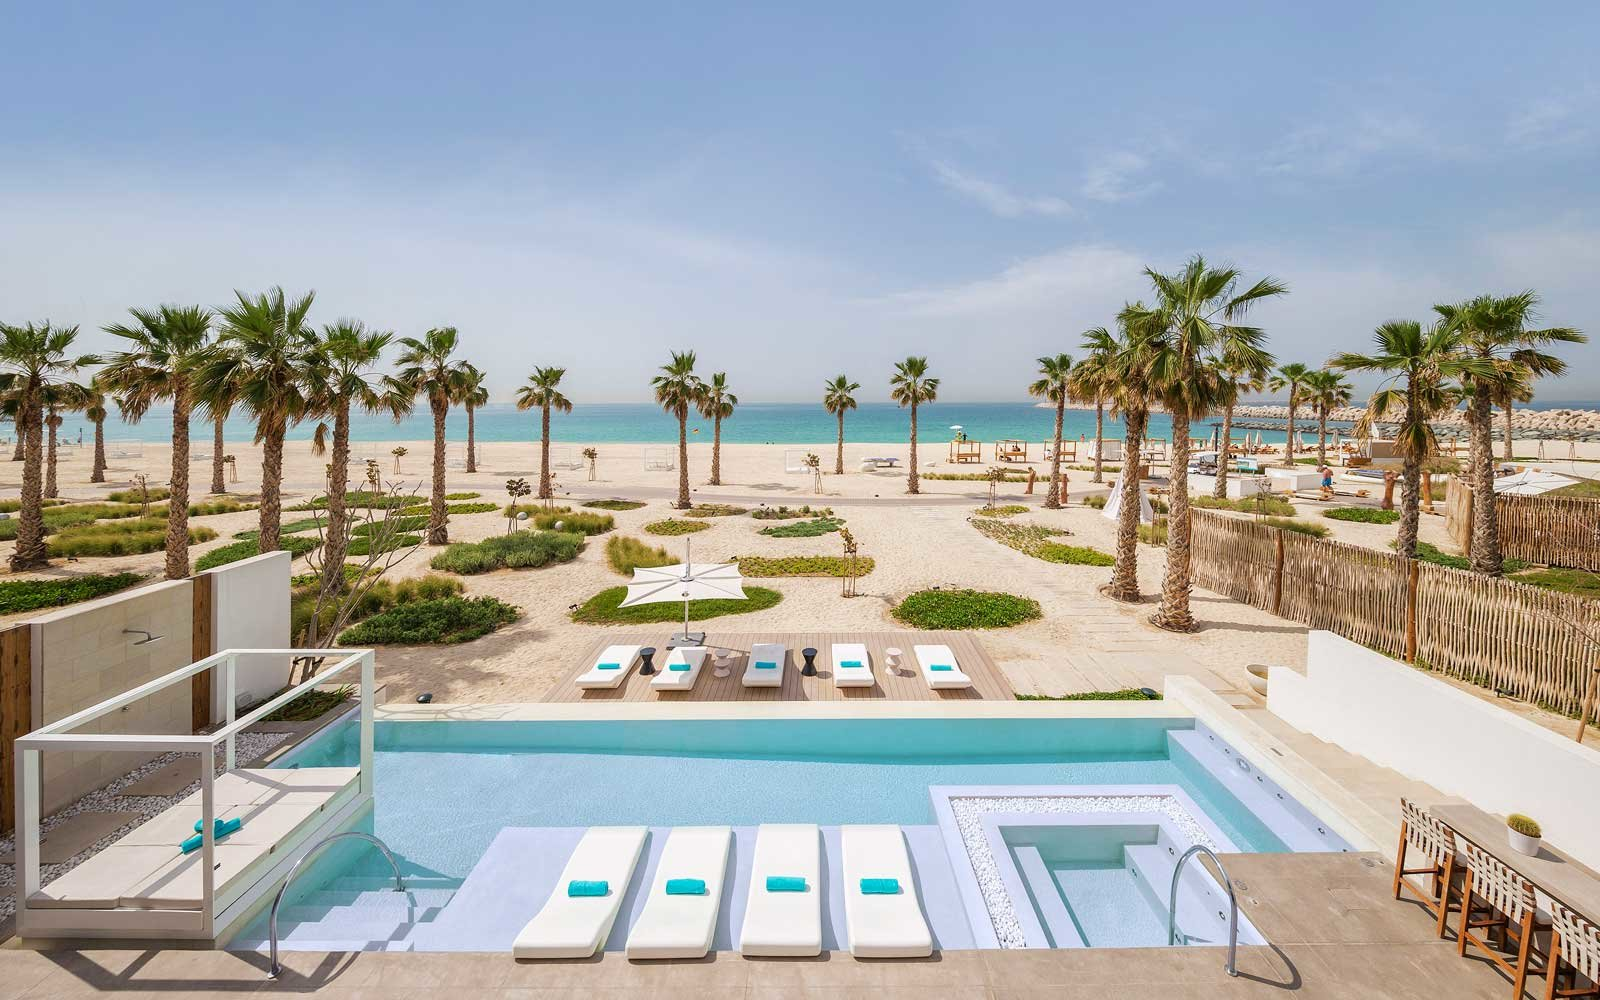 Ultimate Beach Villa at the Nikki Beach Dubai resort